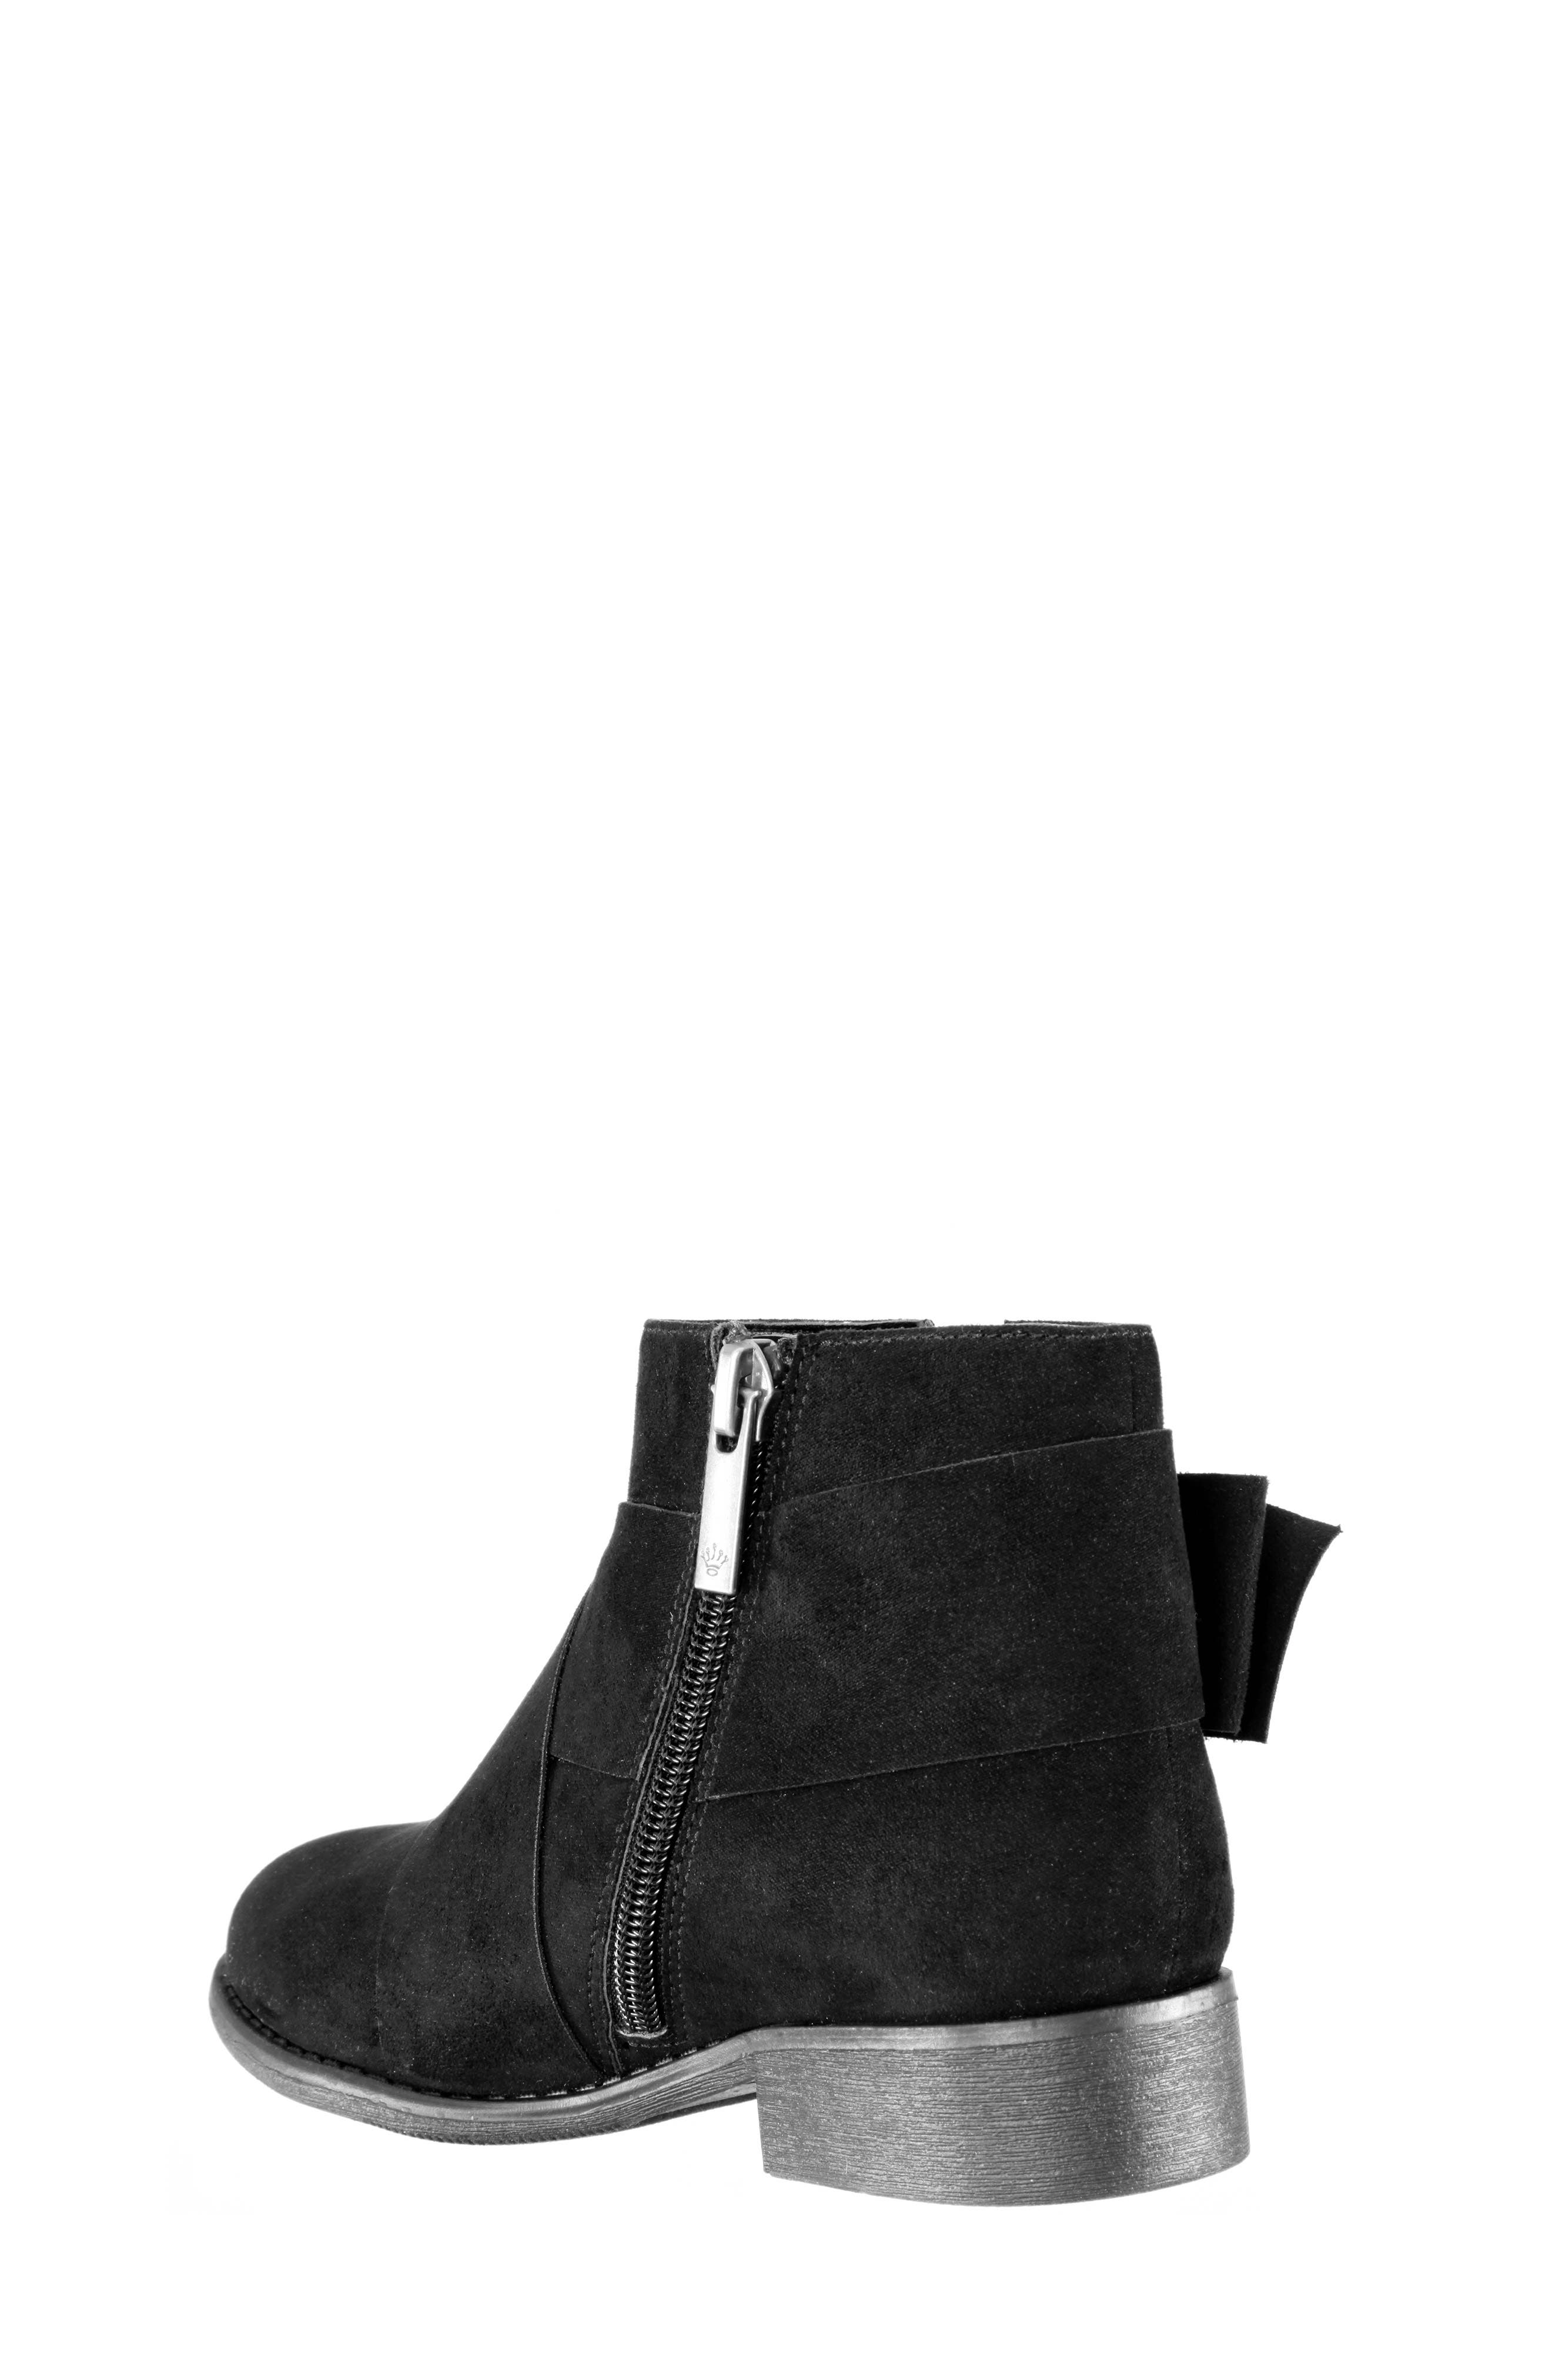 Dollee Bootie,                             Alternate thumbnail 2, color,                             BLACK MICRO SUEDE